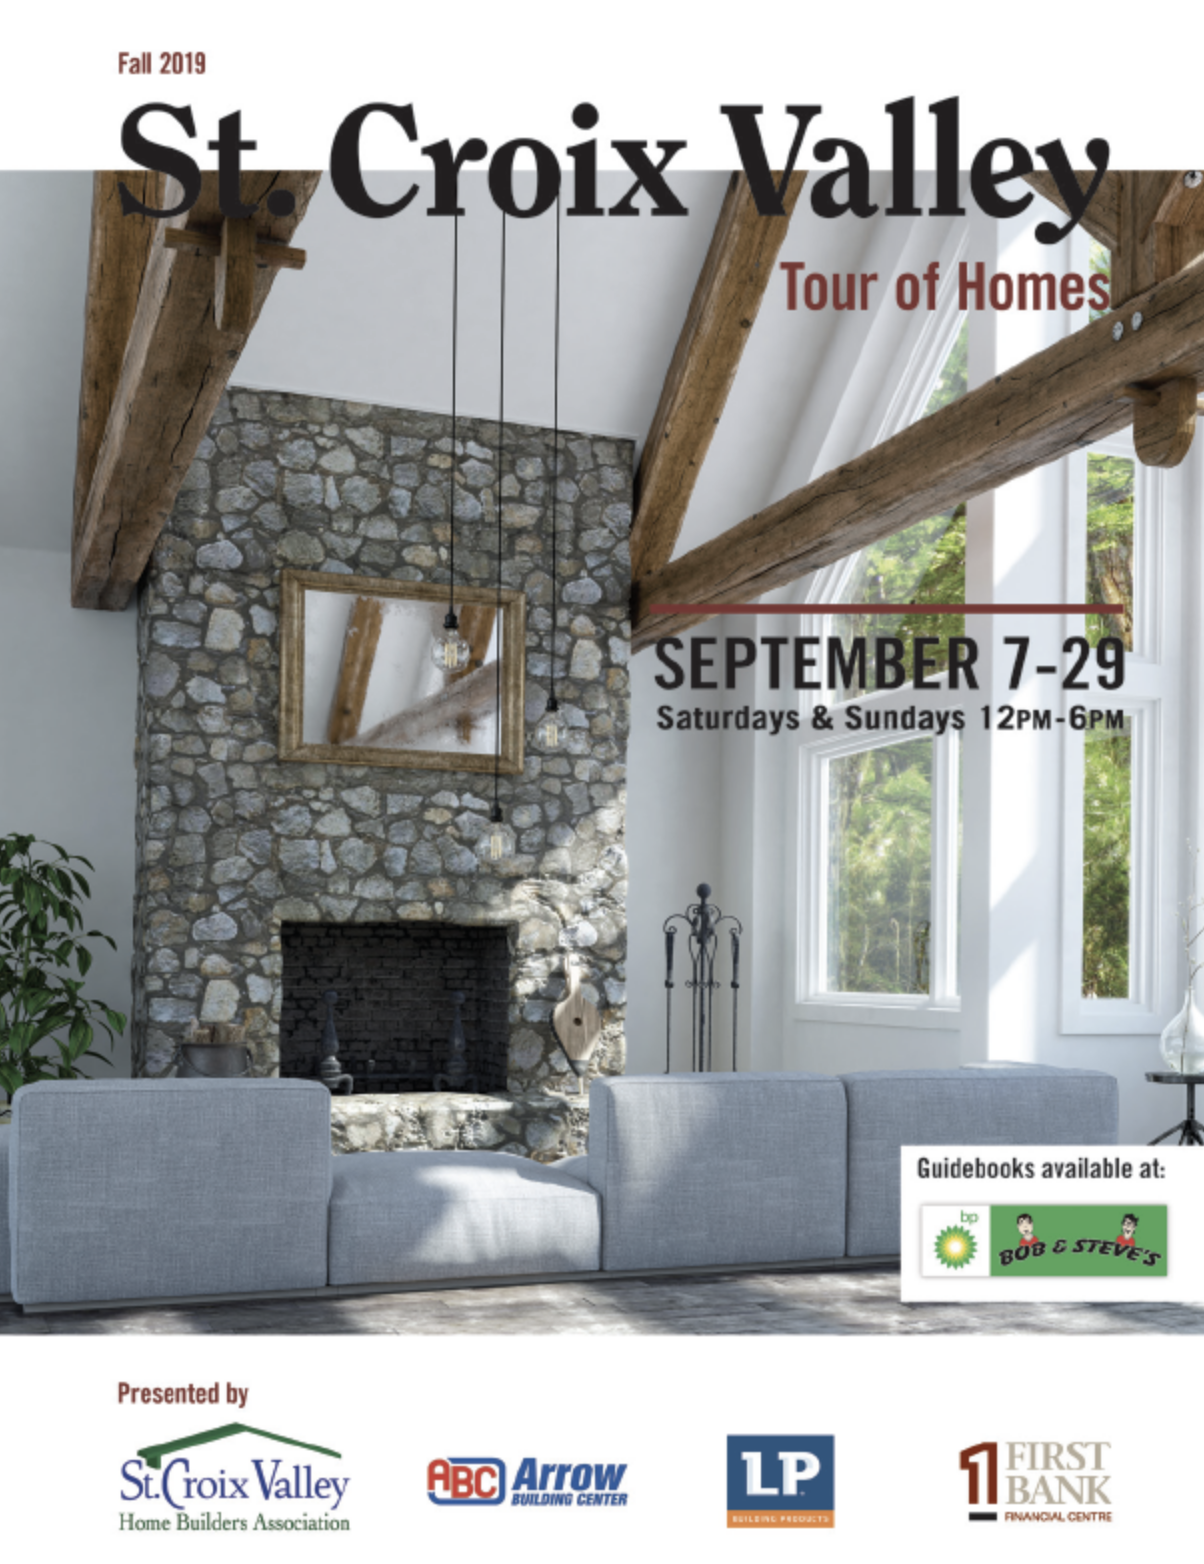 2019 St. Croix Valley Tour of Homes Guidbook